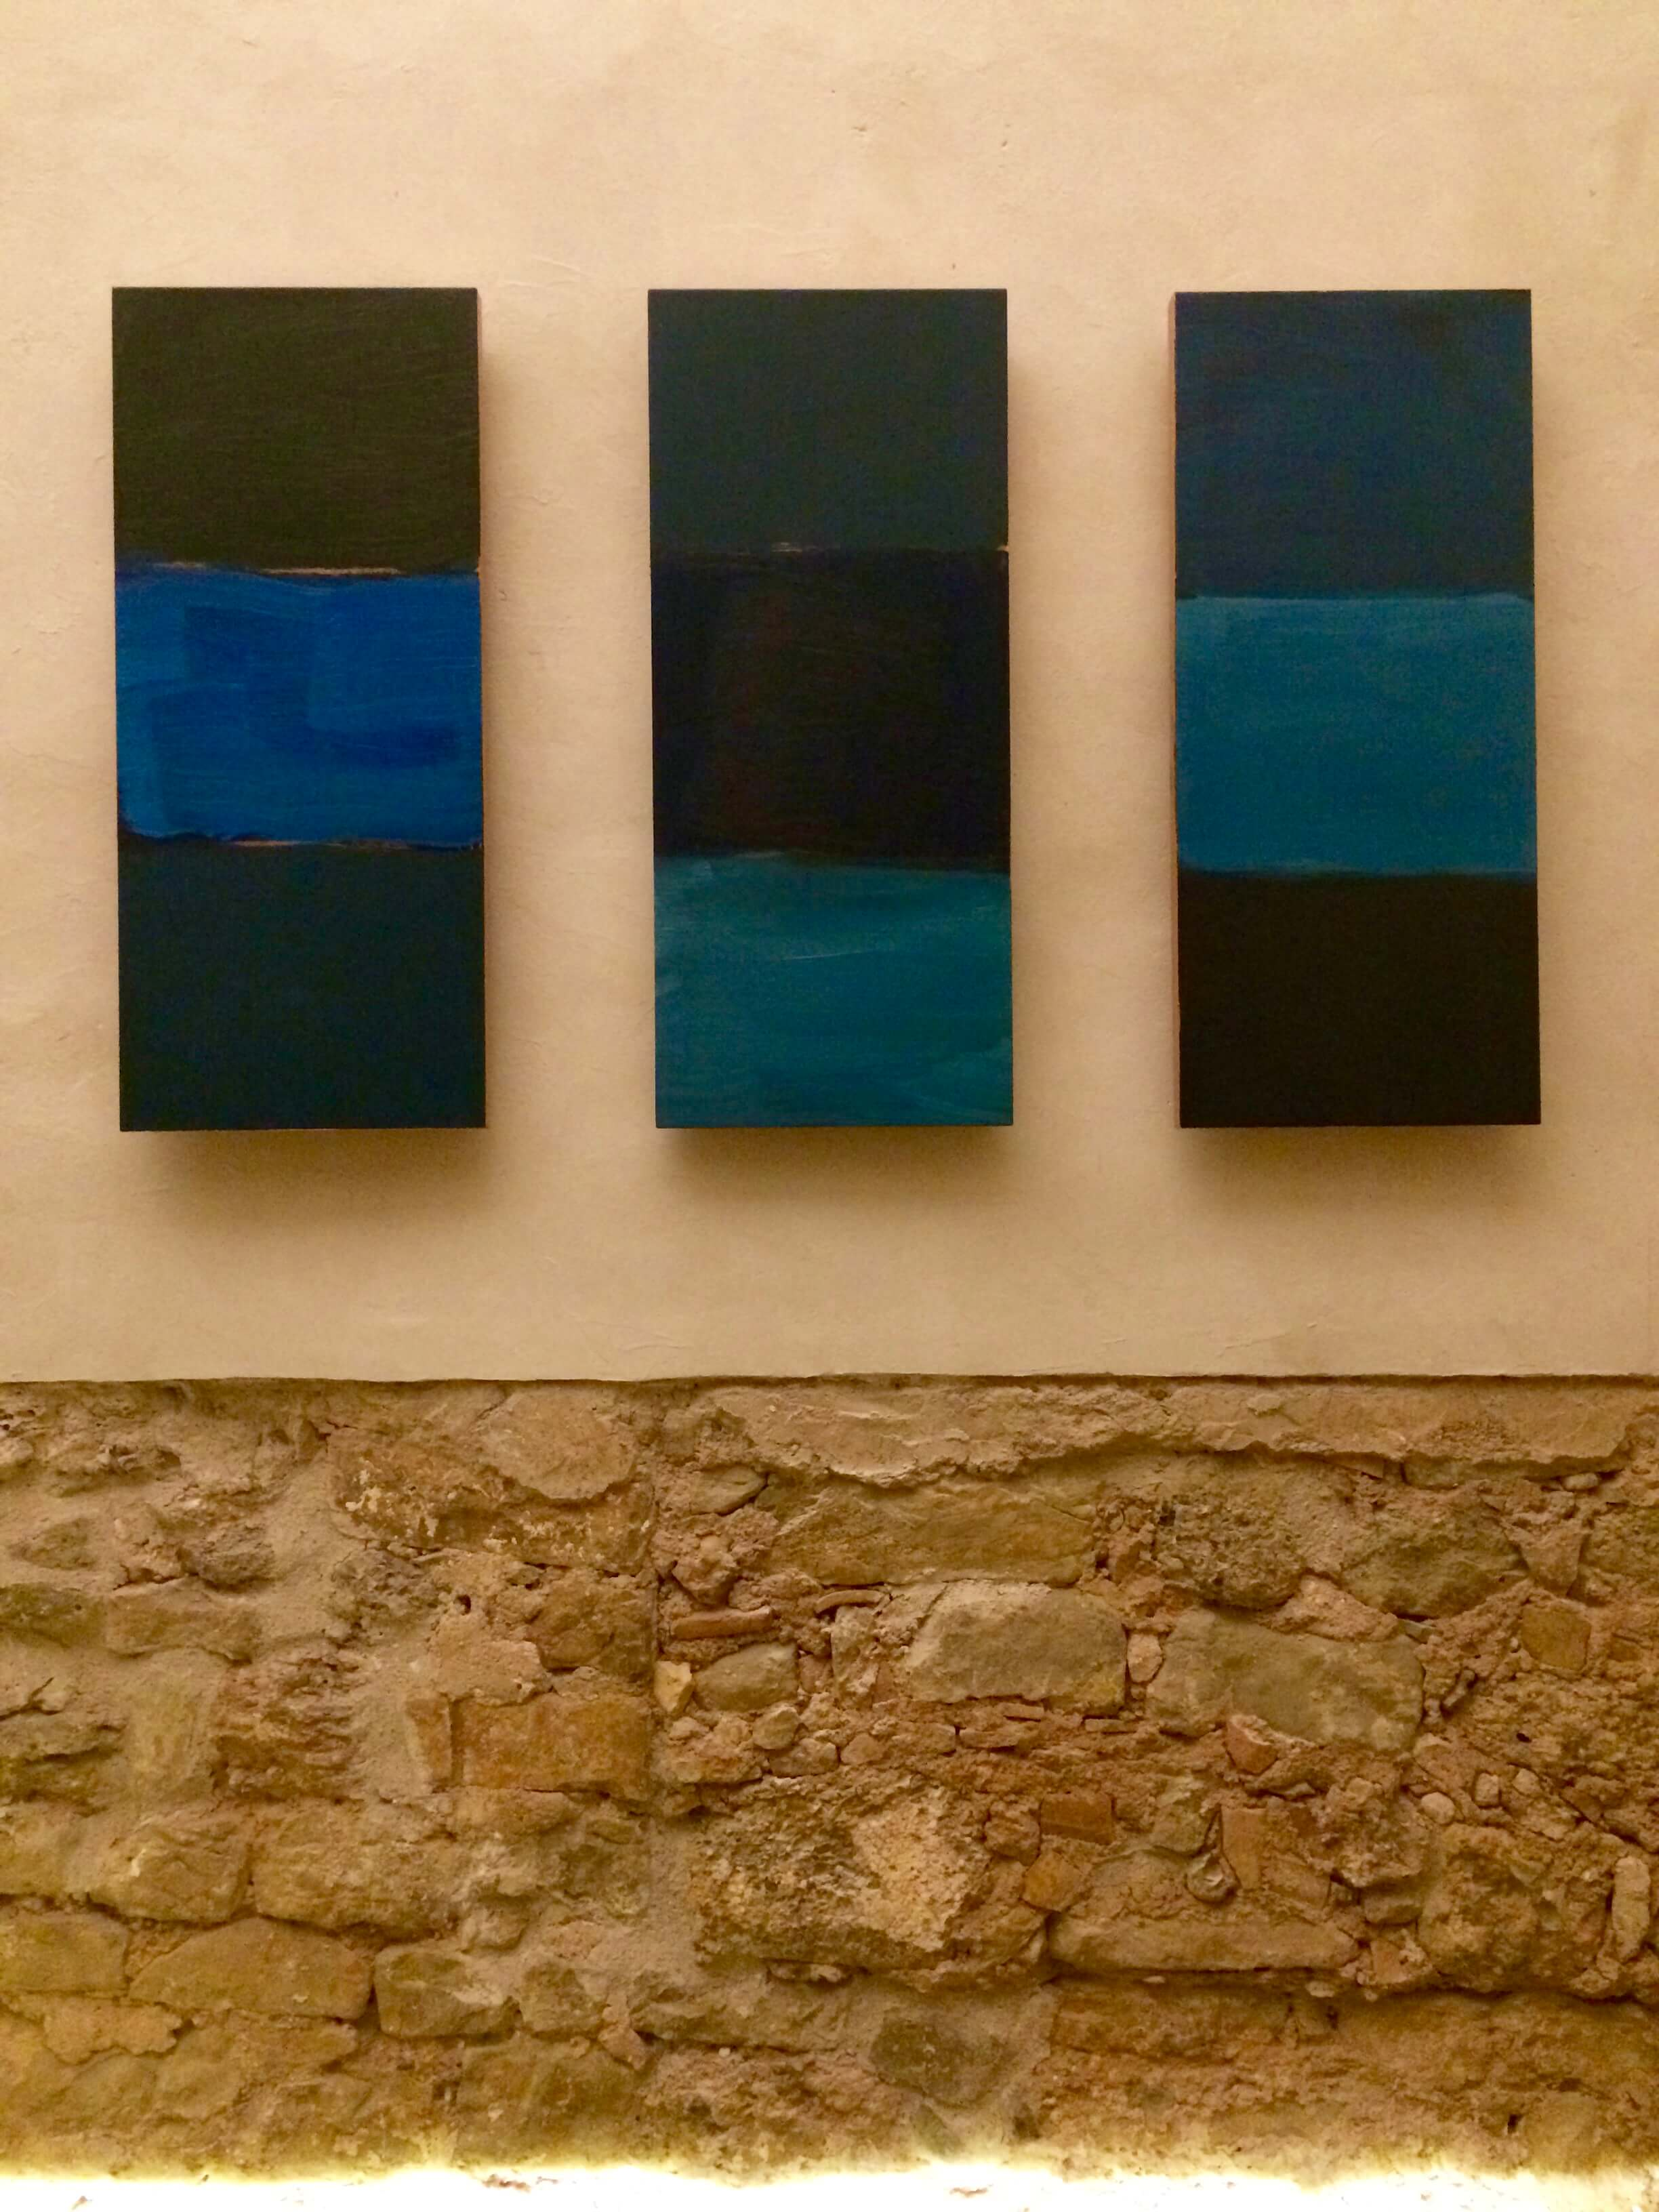 Sean Scully Project, Santa Cecilia Church in Montserrat